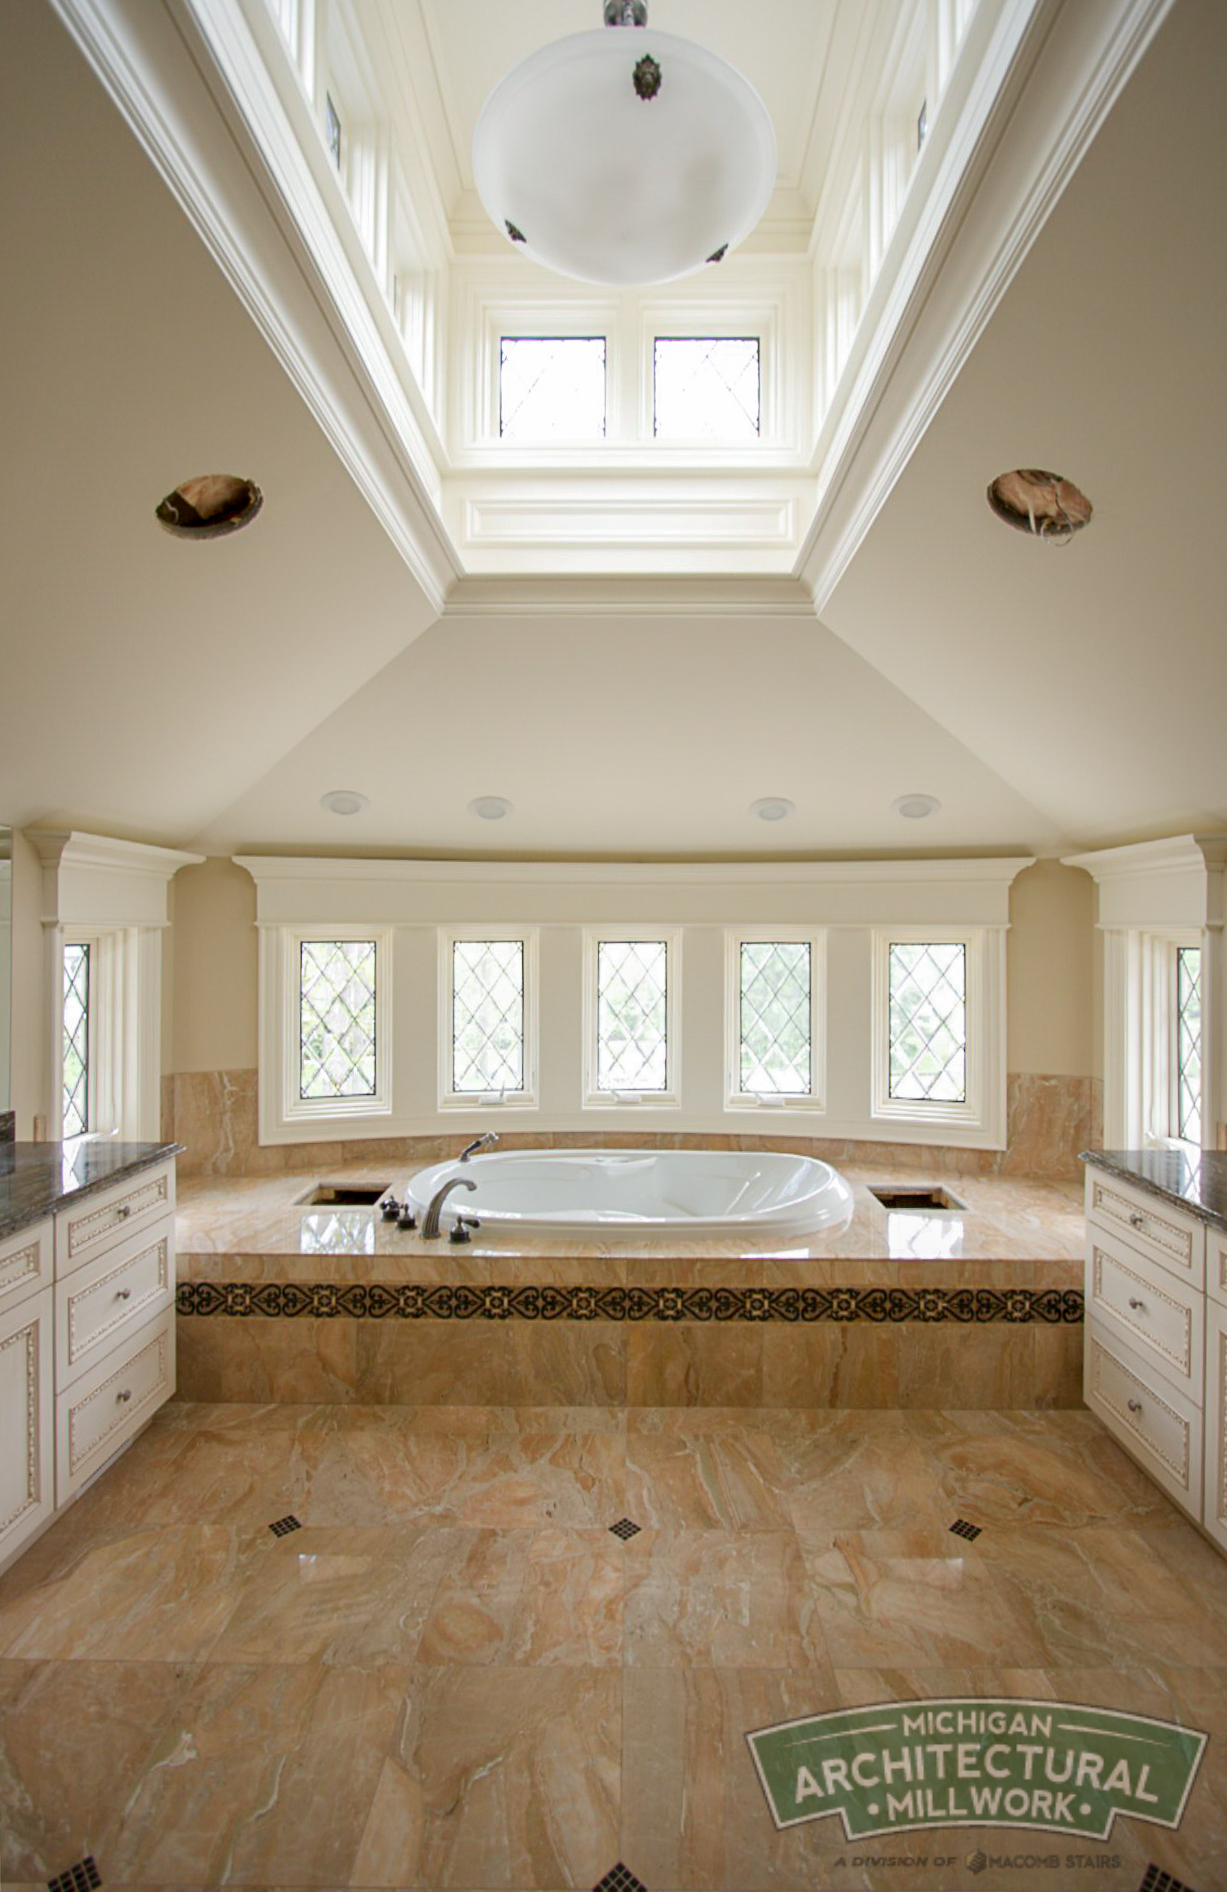 Michigan Architectural Millwork- Moulding and Millwork Photo-99.jpg